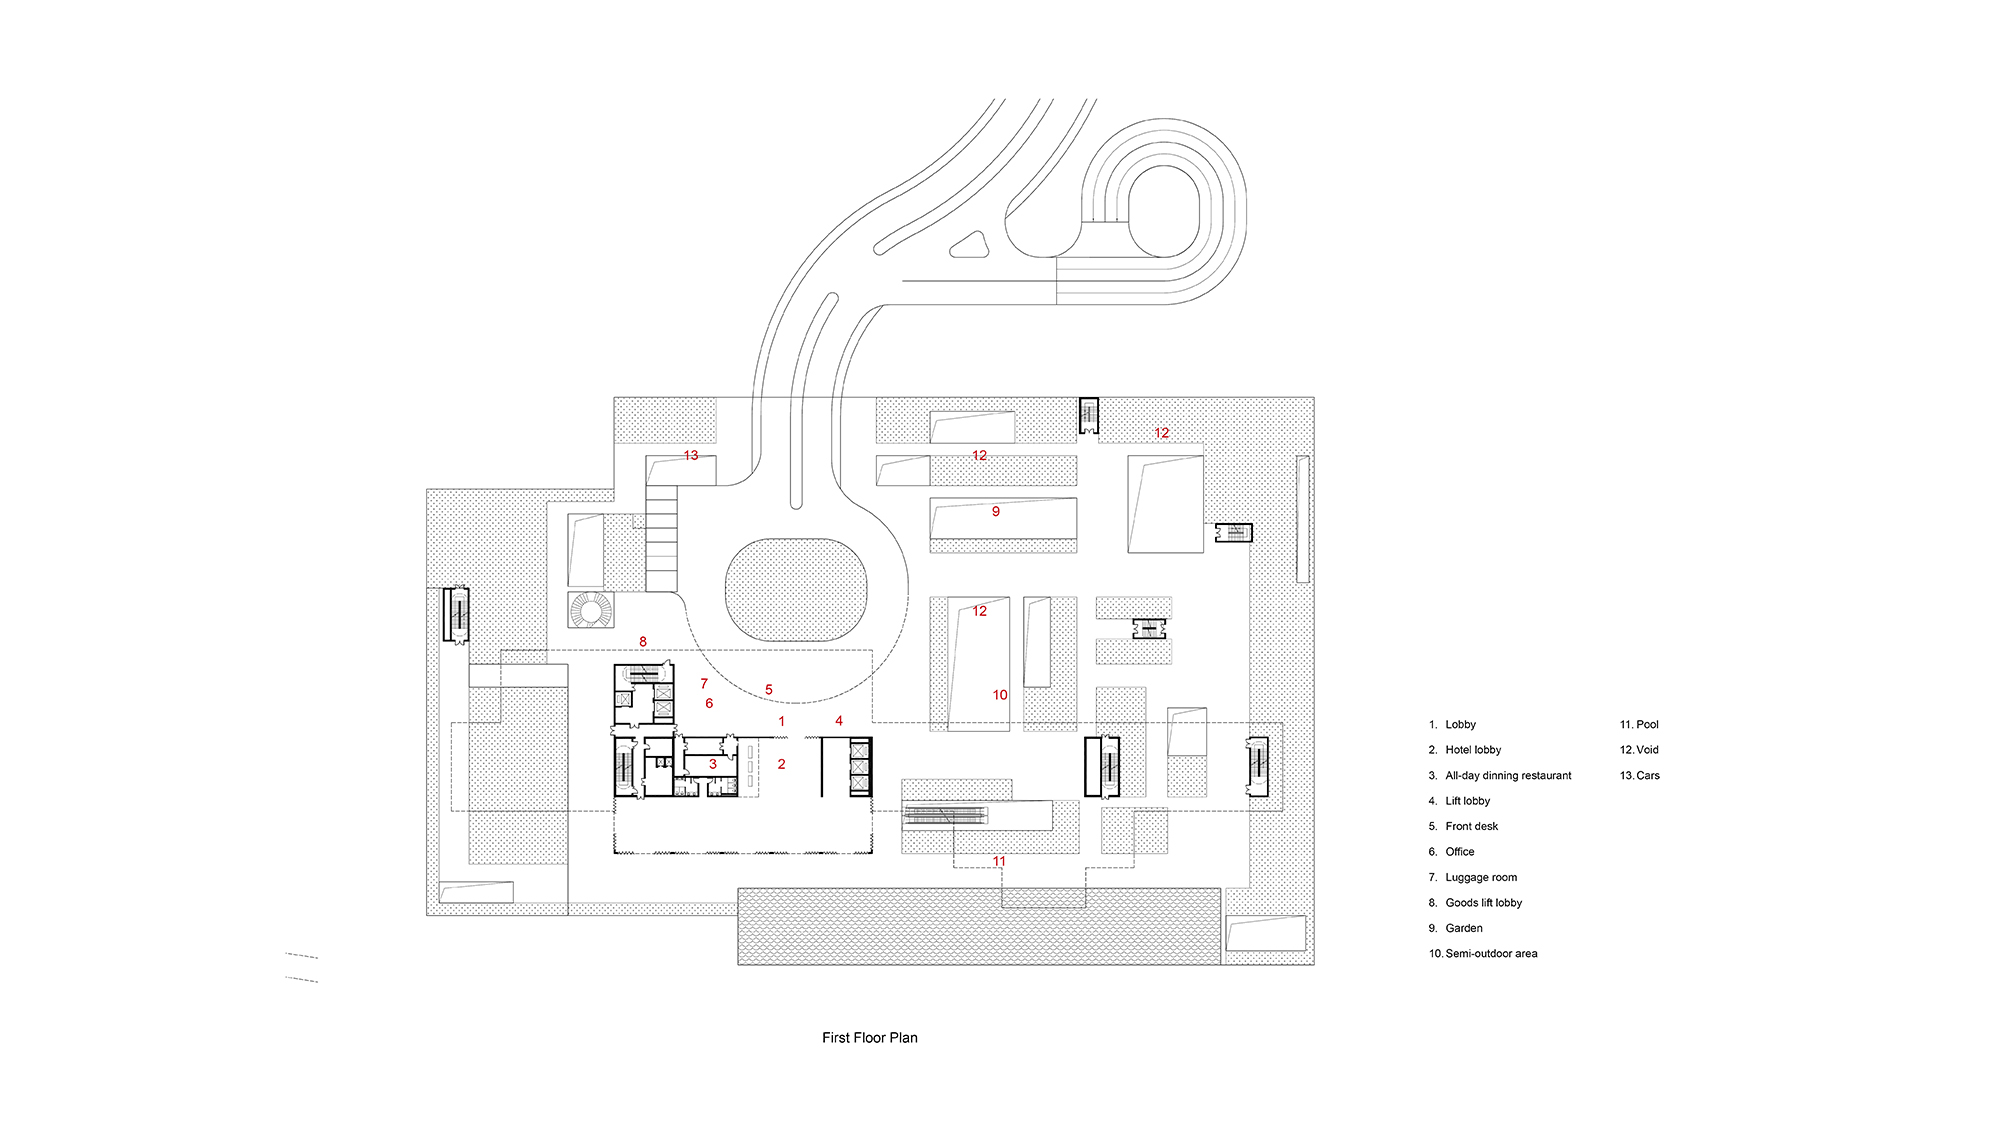 First Floor Plan Studio A+}